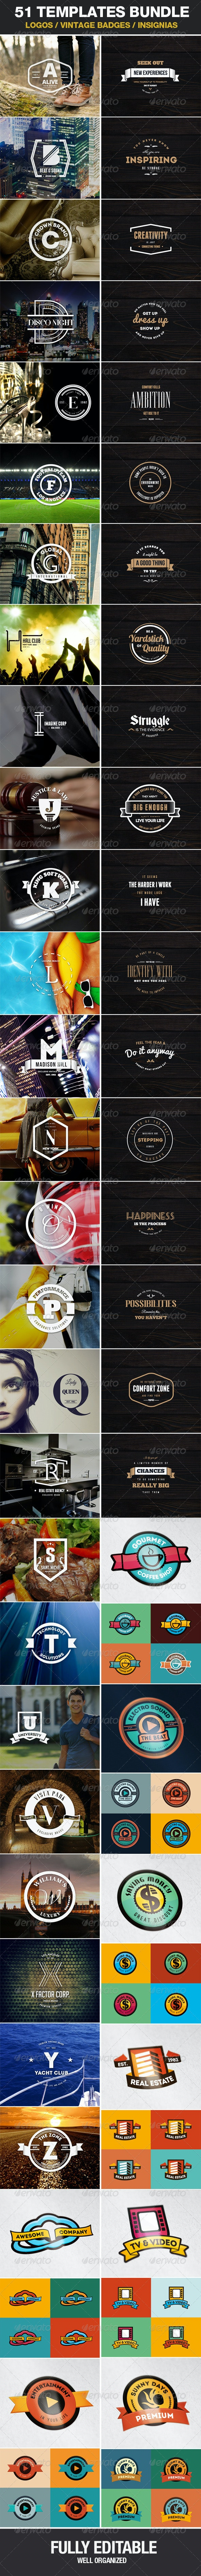 51 Templates / Logos / Vintage Badges / Insignias - Badges & Stickers Web Elements